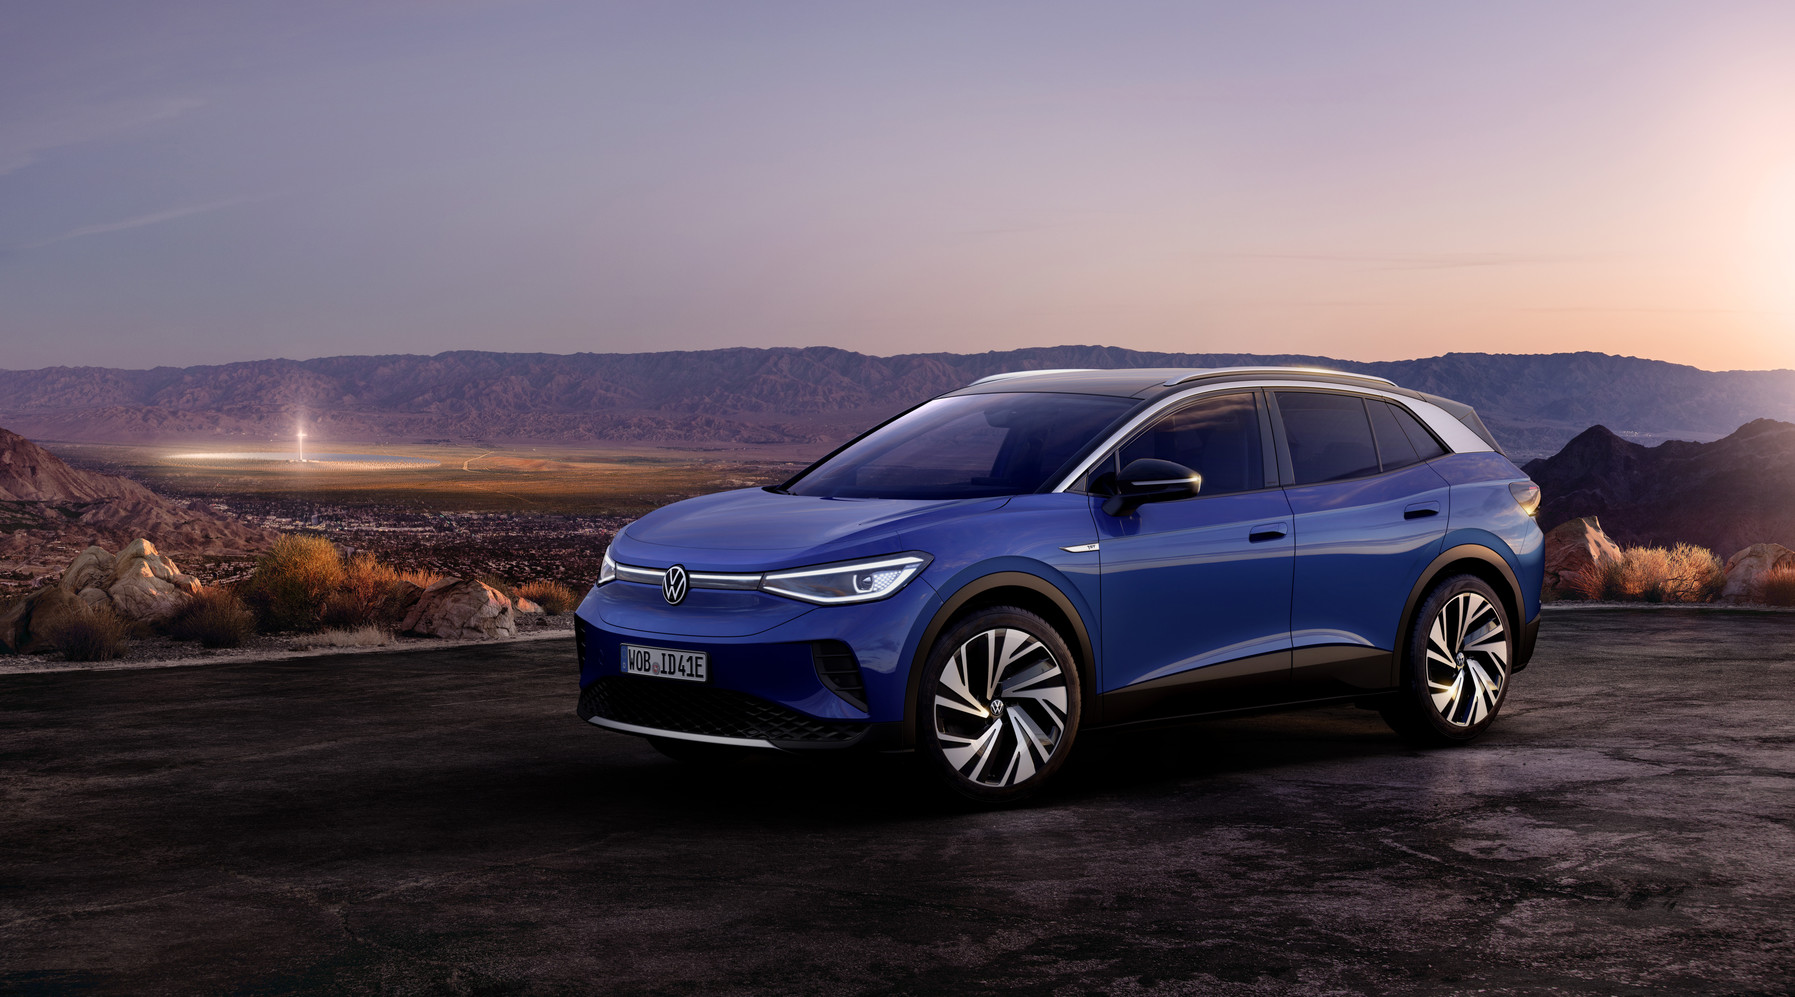 Volkswagen ID.4 fully electric SUV